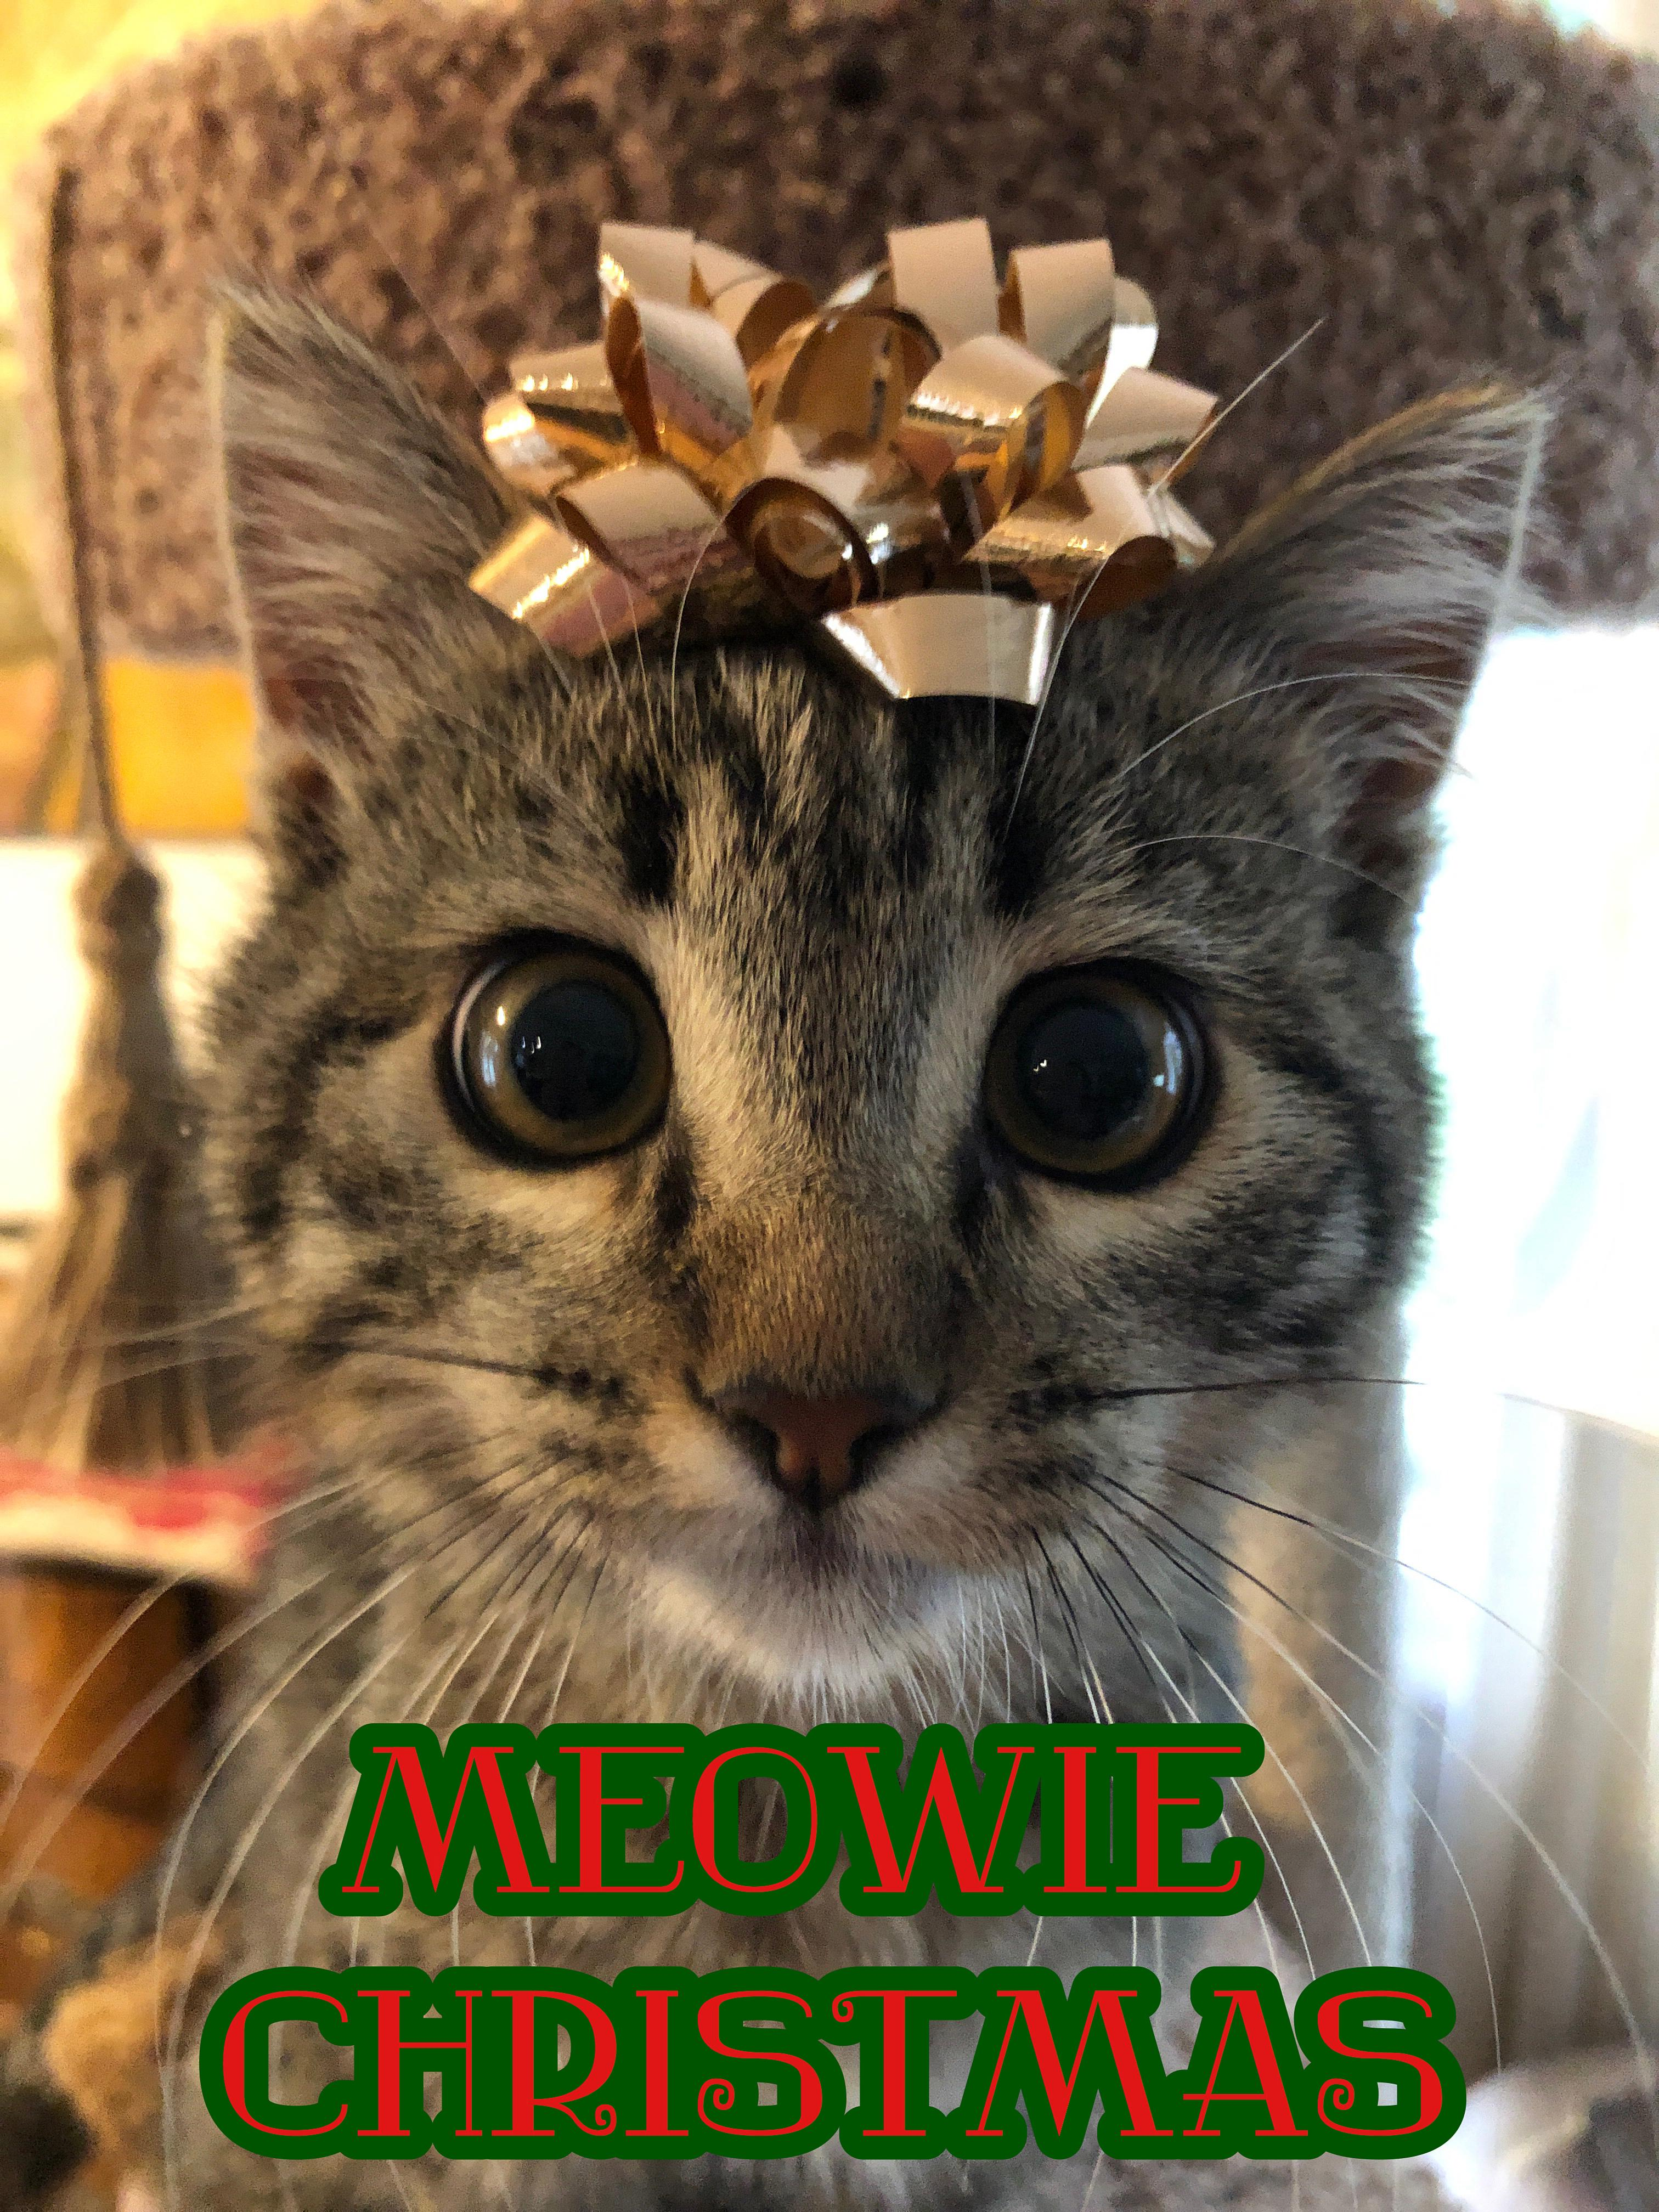 Sarah Bronson created this image of her new kitty, Bodhi, all ready for the holidays. She adds that Bodhi was adopted from the county shelter, and encourages anyone considering a new pet for Christmas to adopt.